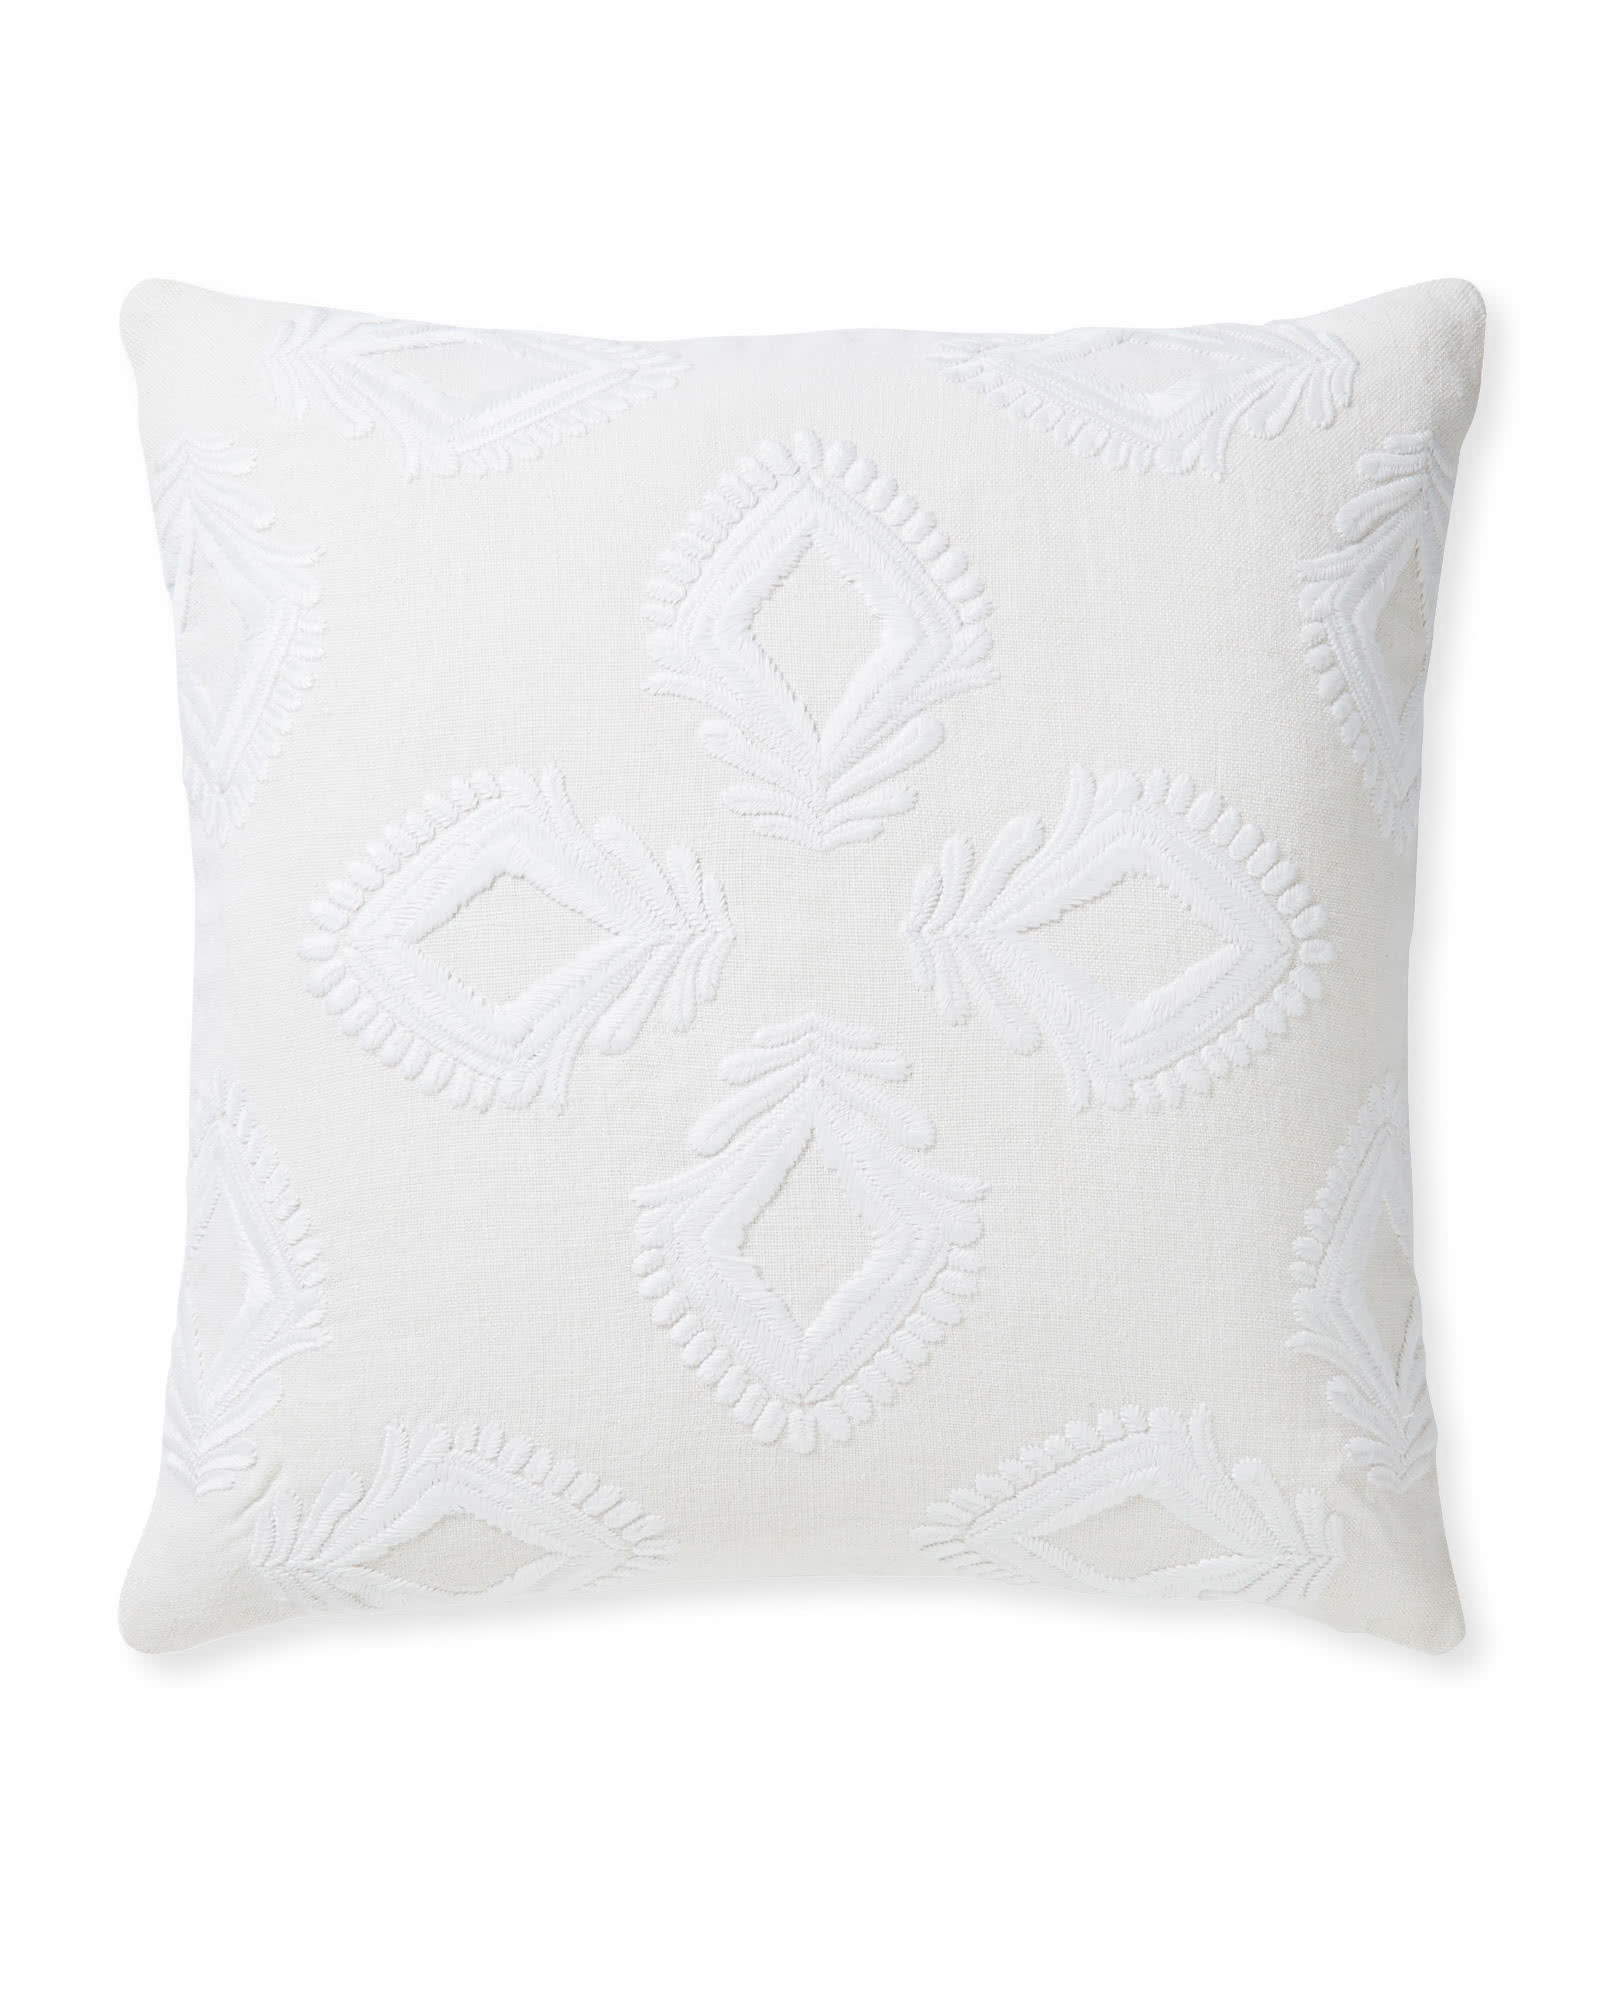 Leighton Pillow Cover, White